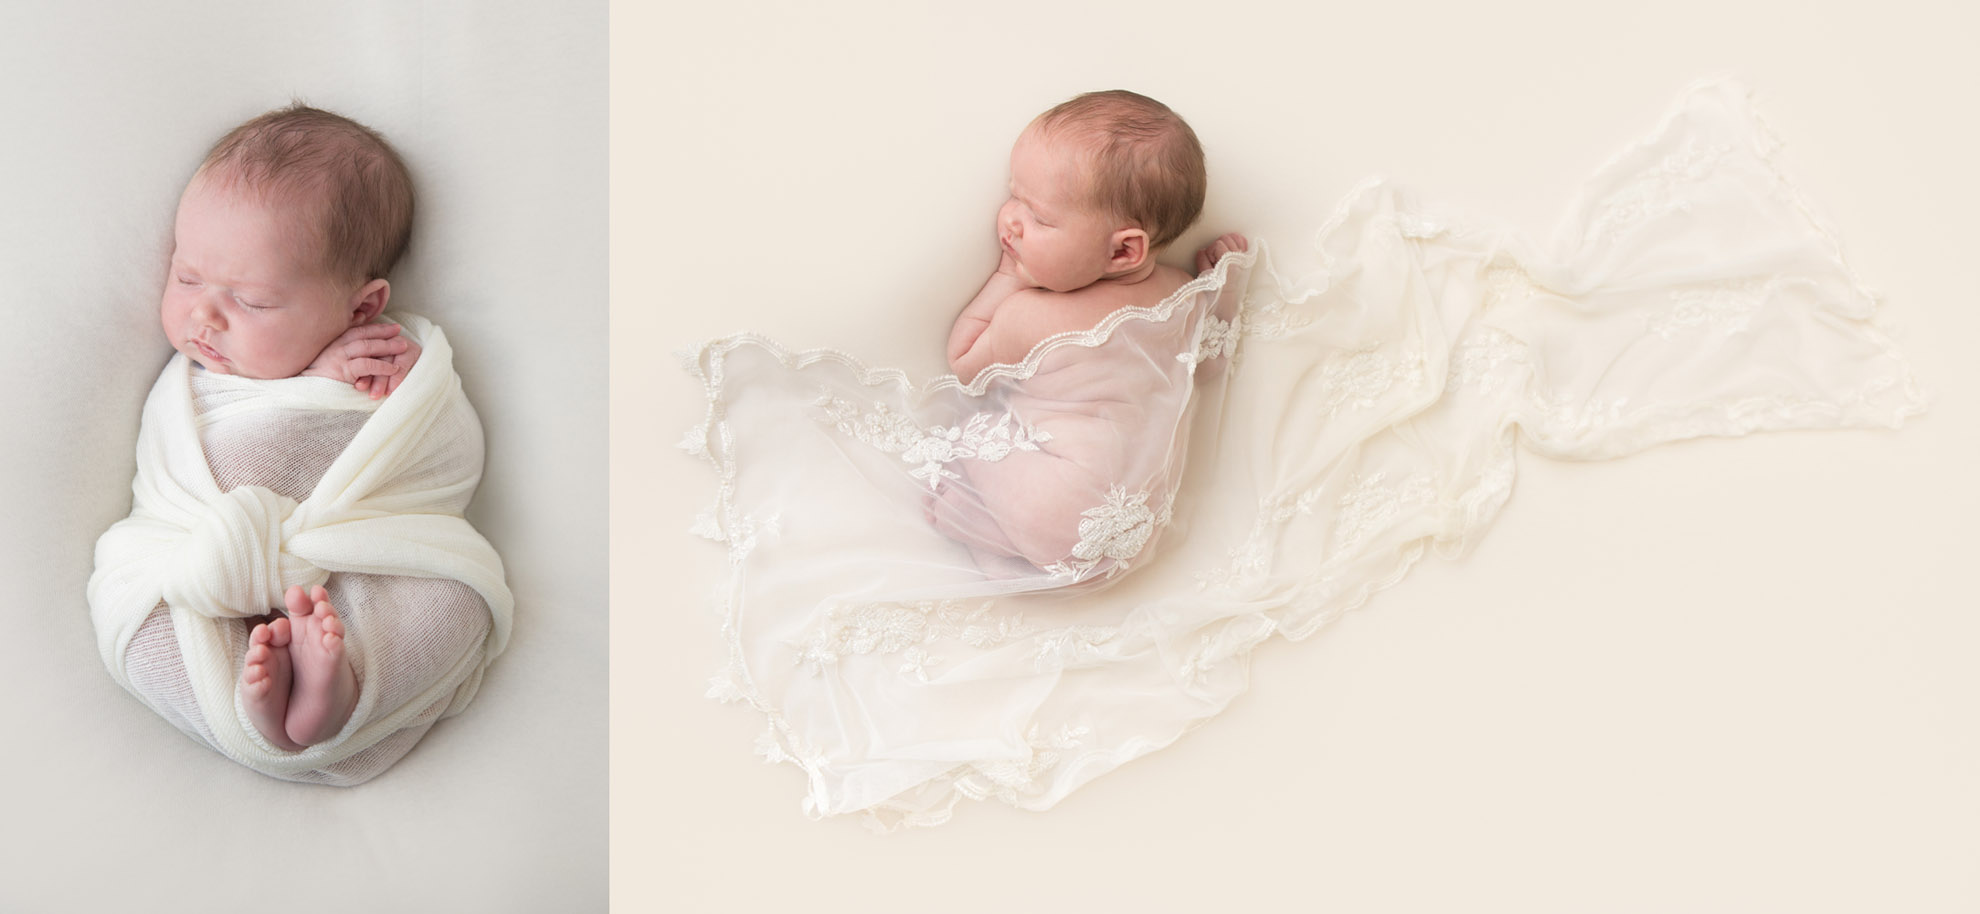 Cream-and-lace-baby-photos.jpg